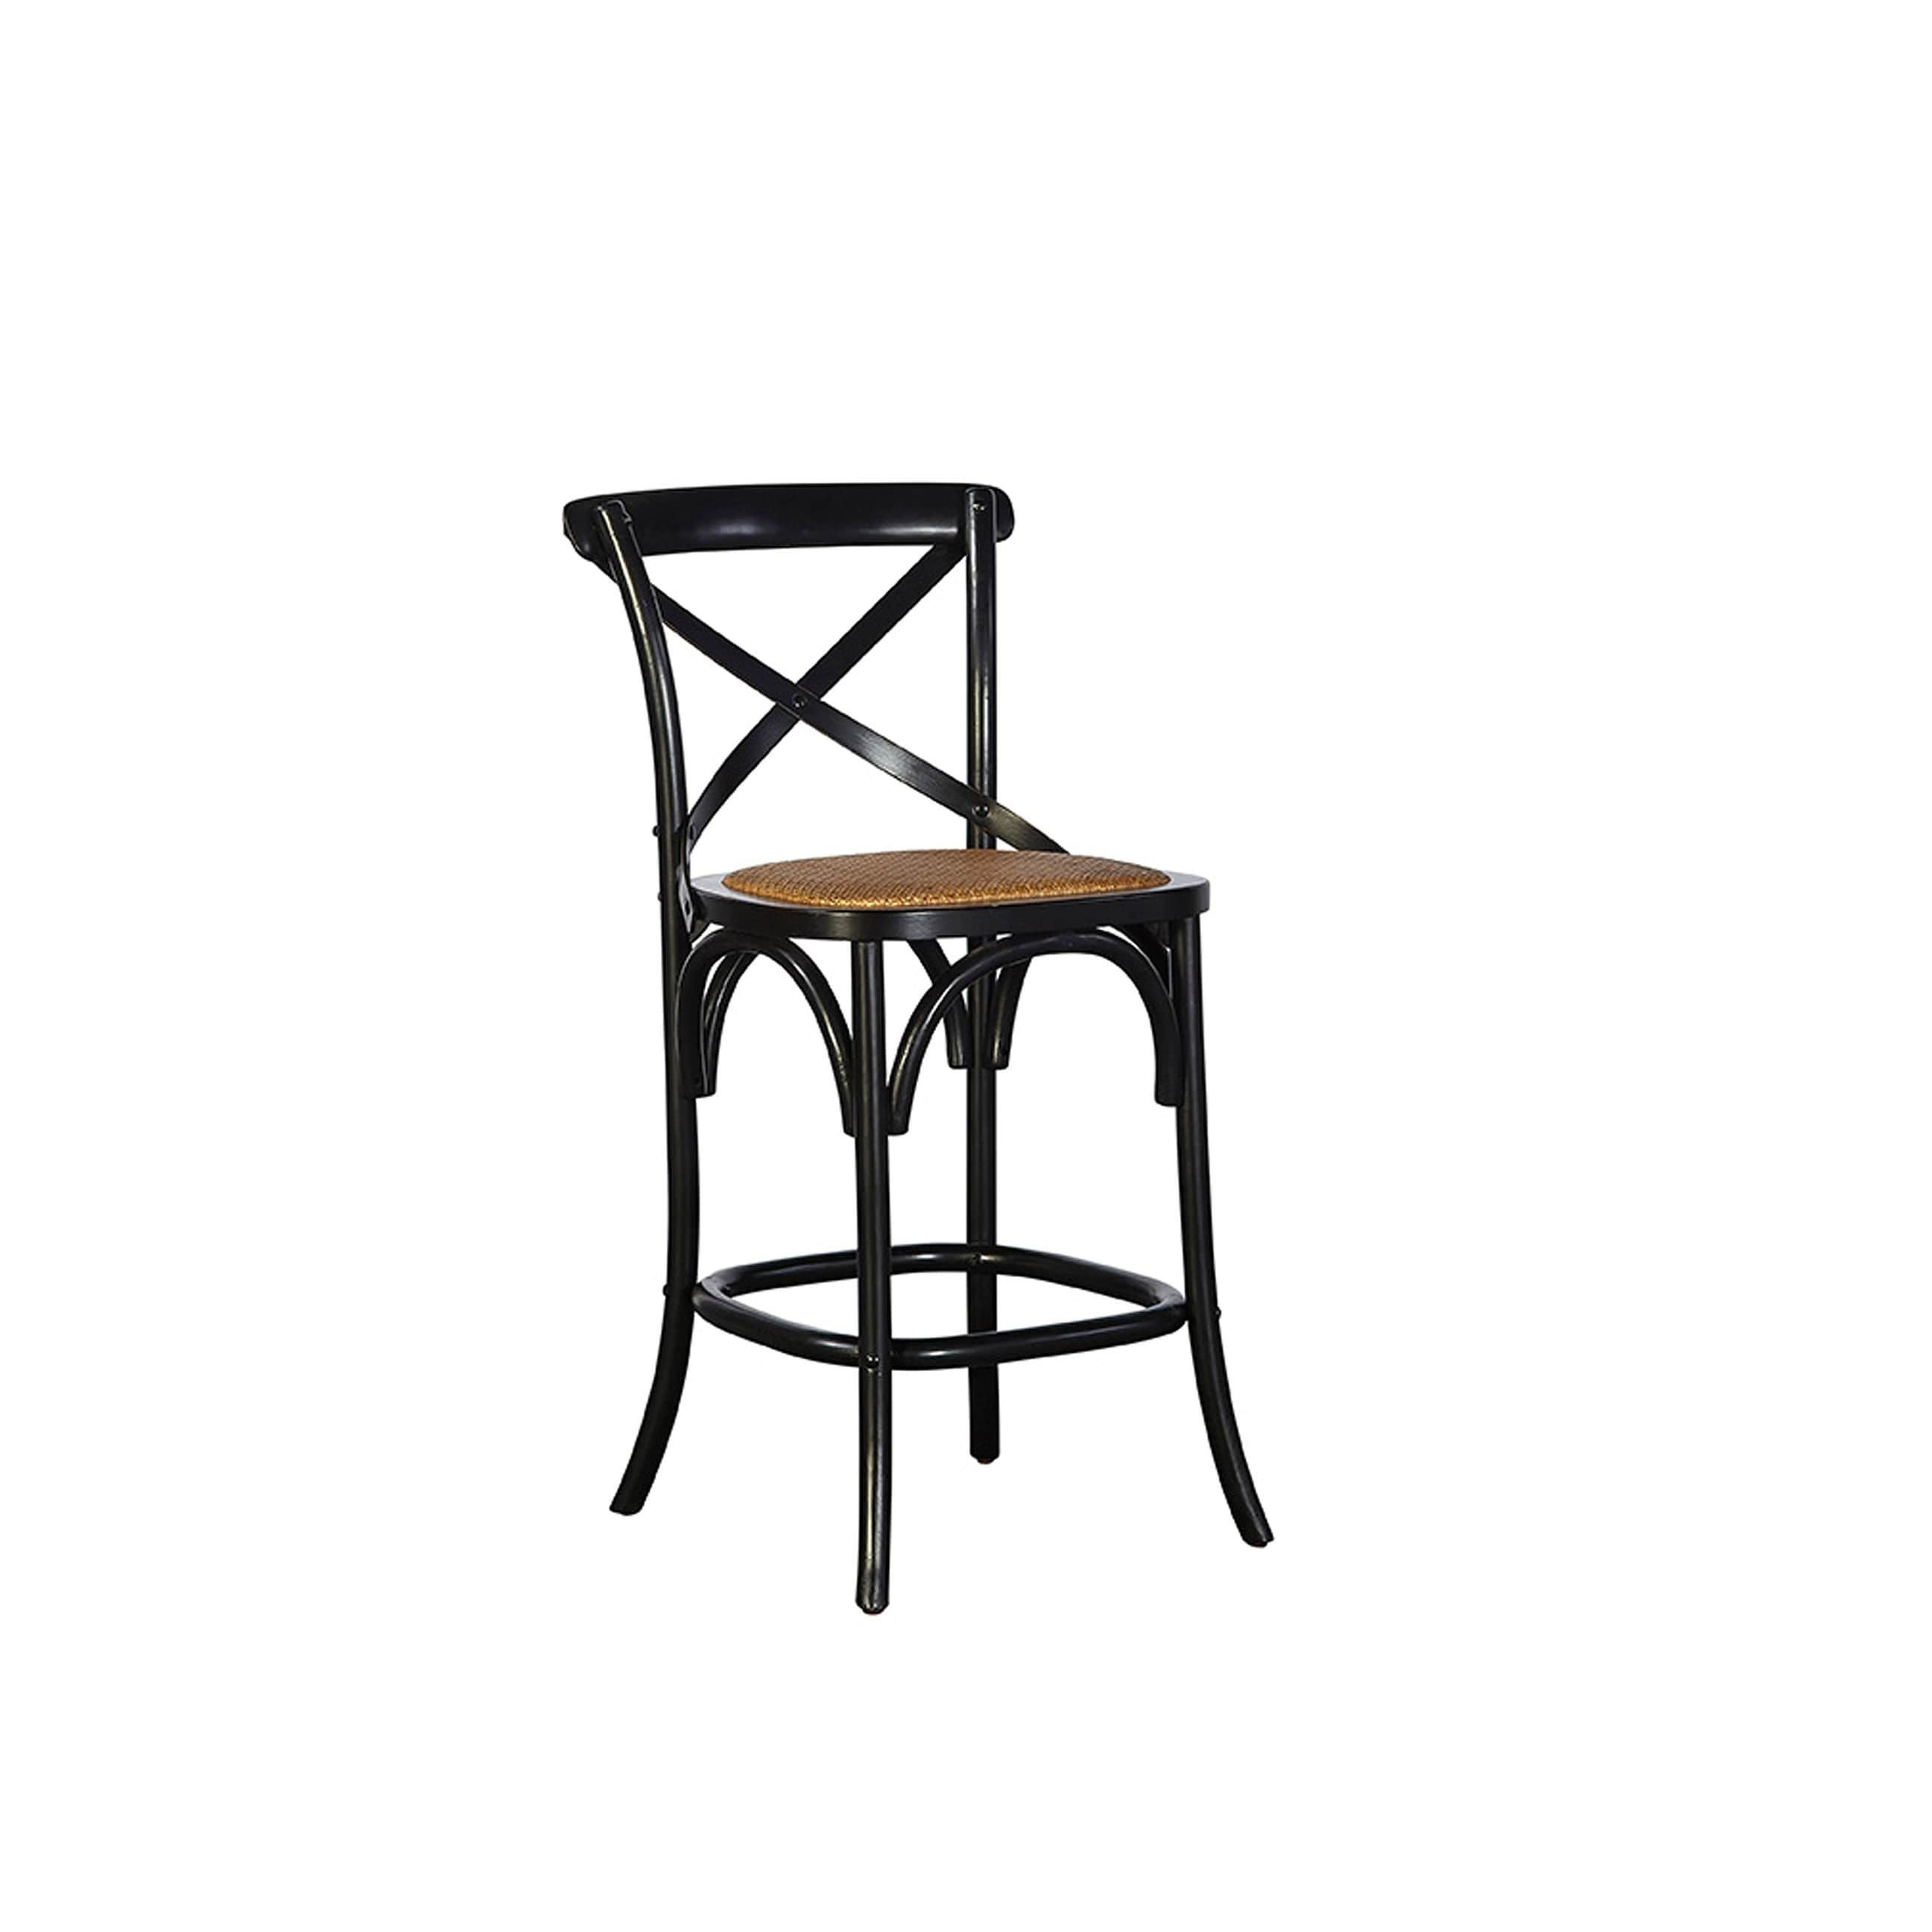 and black ikea on parisian henriksdal backrest bar stool stools with ideas category